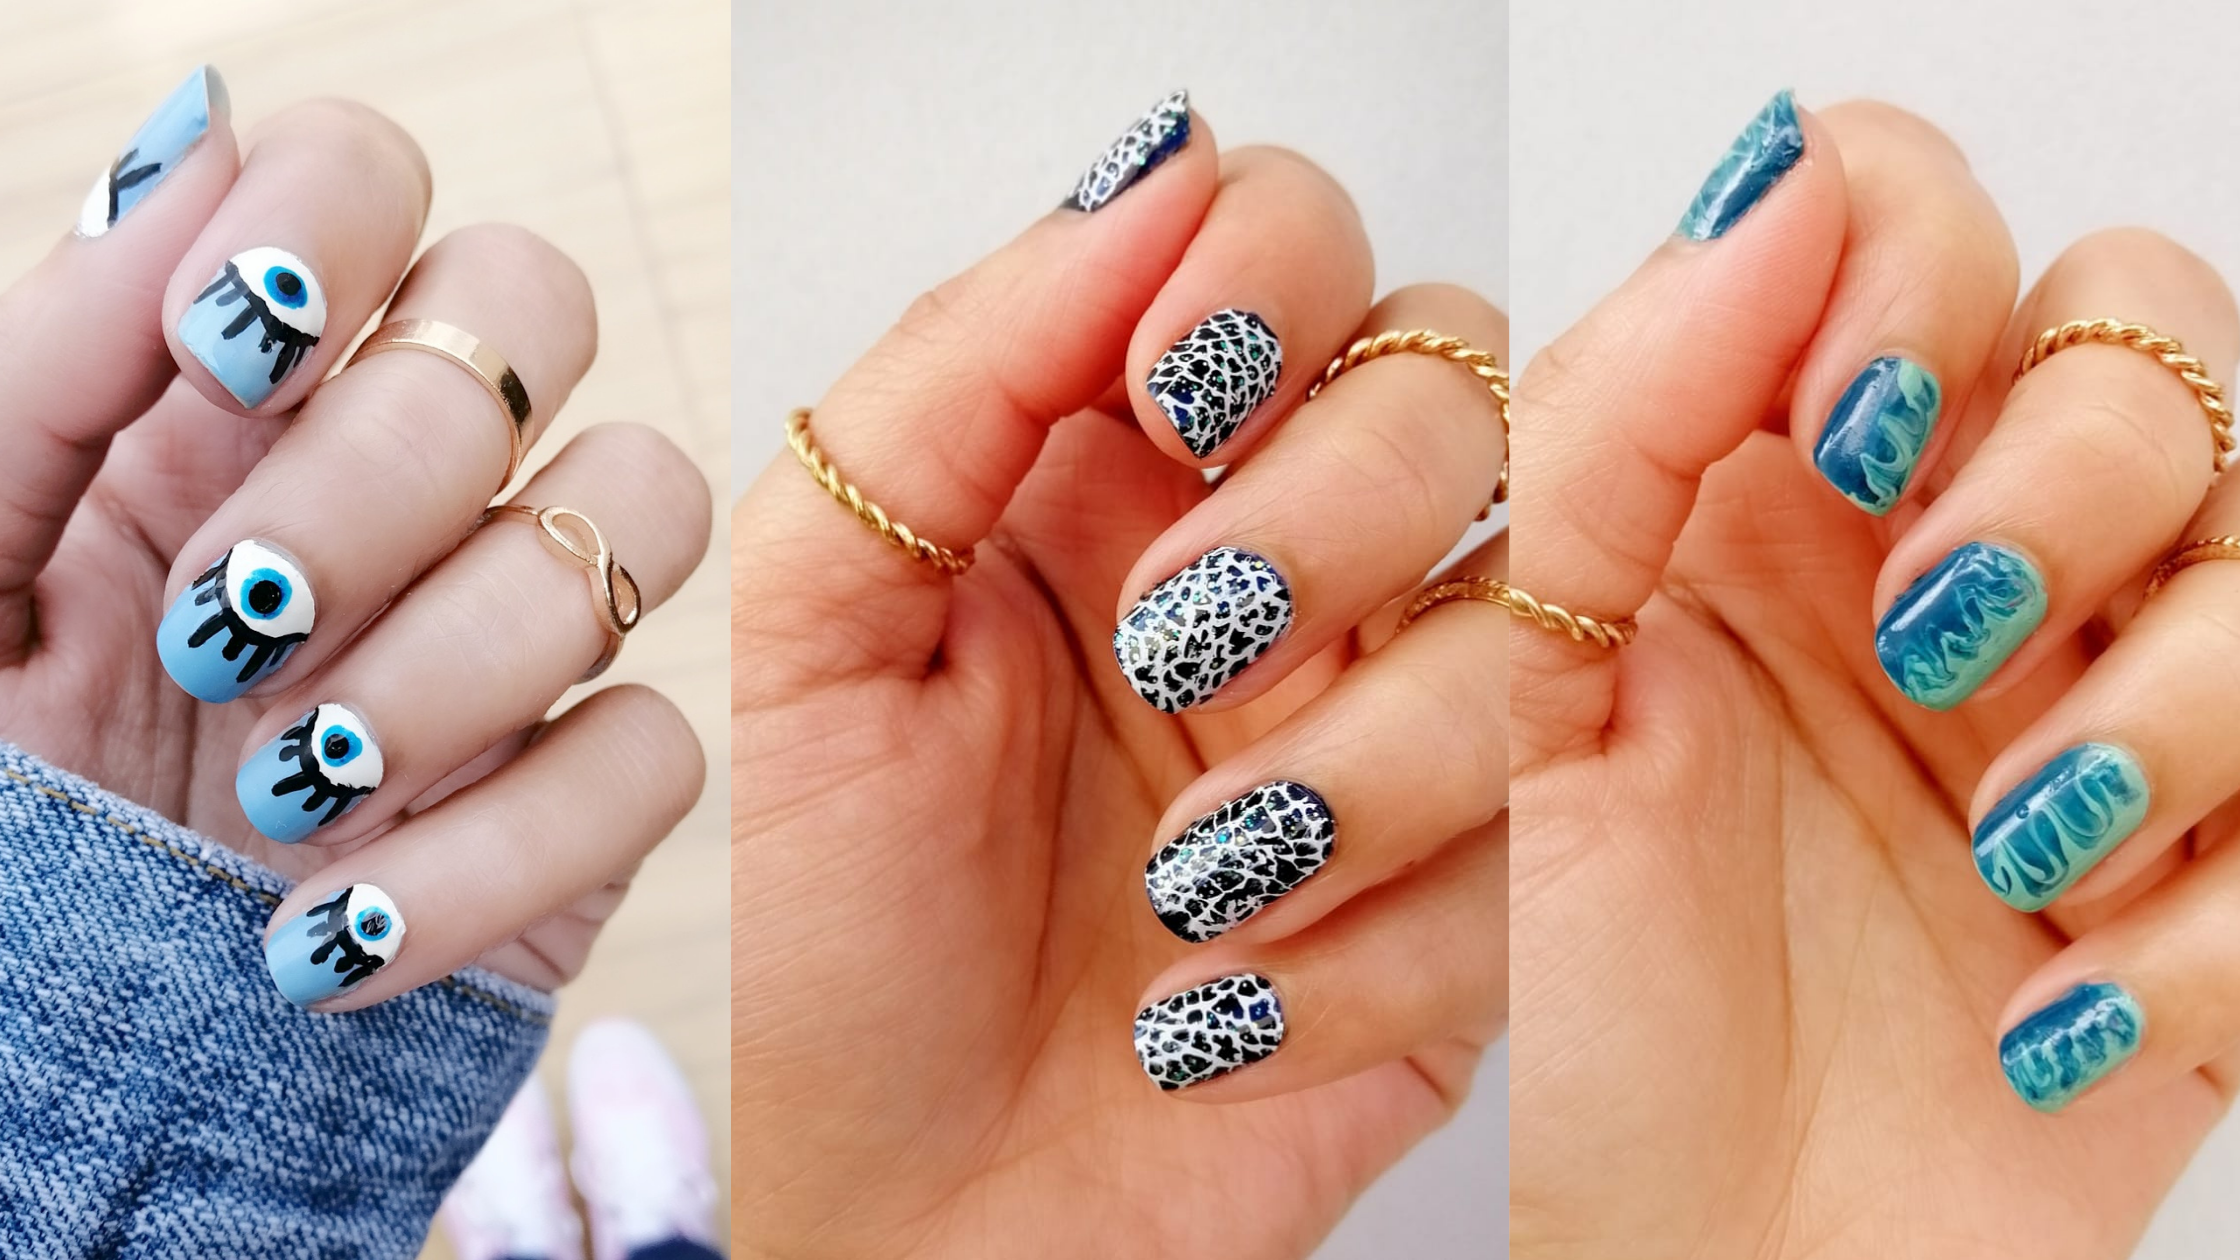 10 coolest nail designs for fall 2020